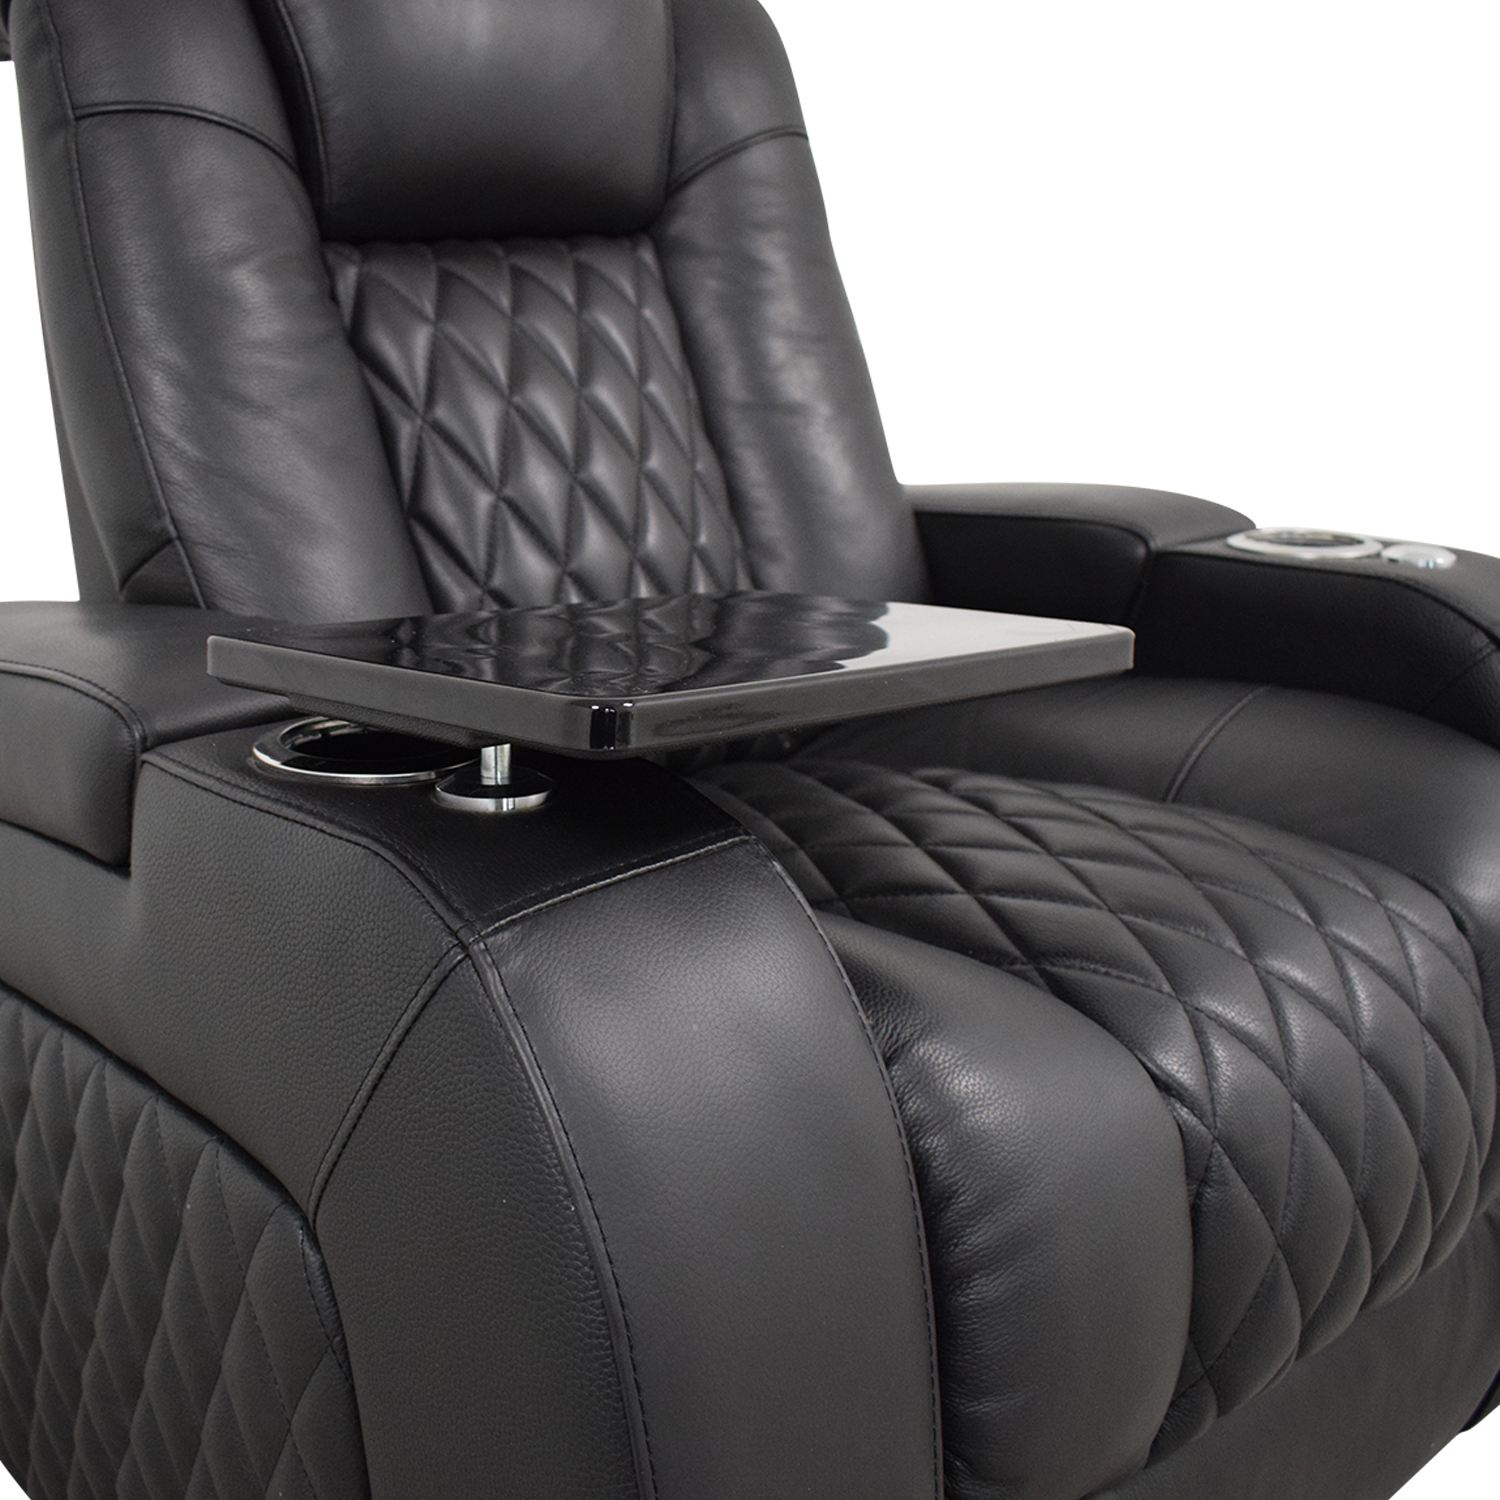 Seatcraft Seatcraft Diamante Home Theater Seating Leather Power Recliner second hand